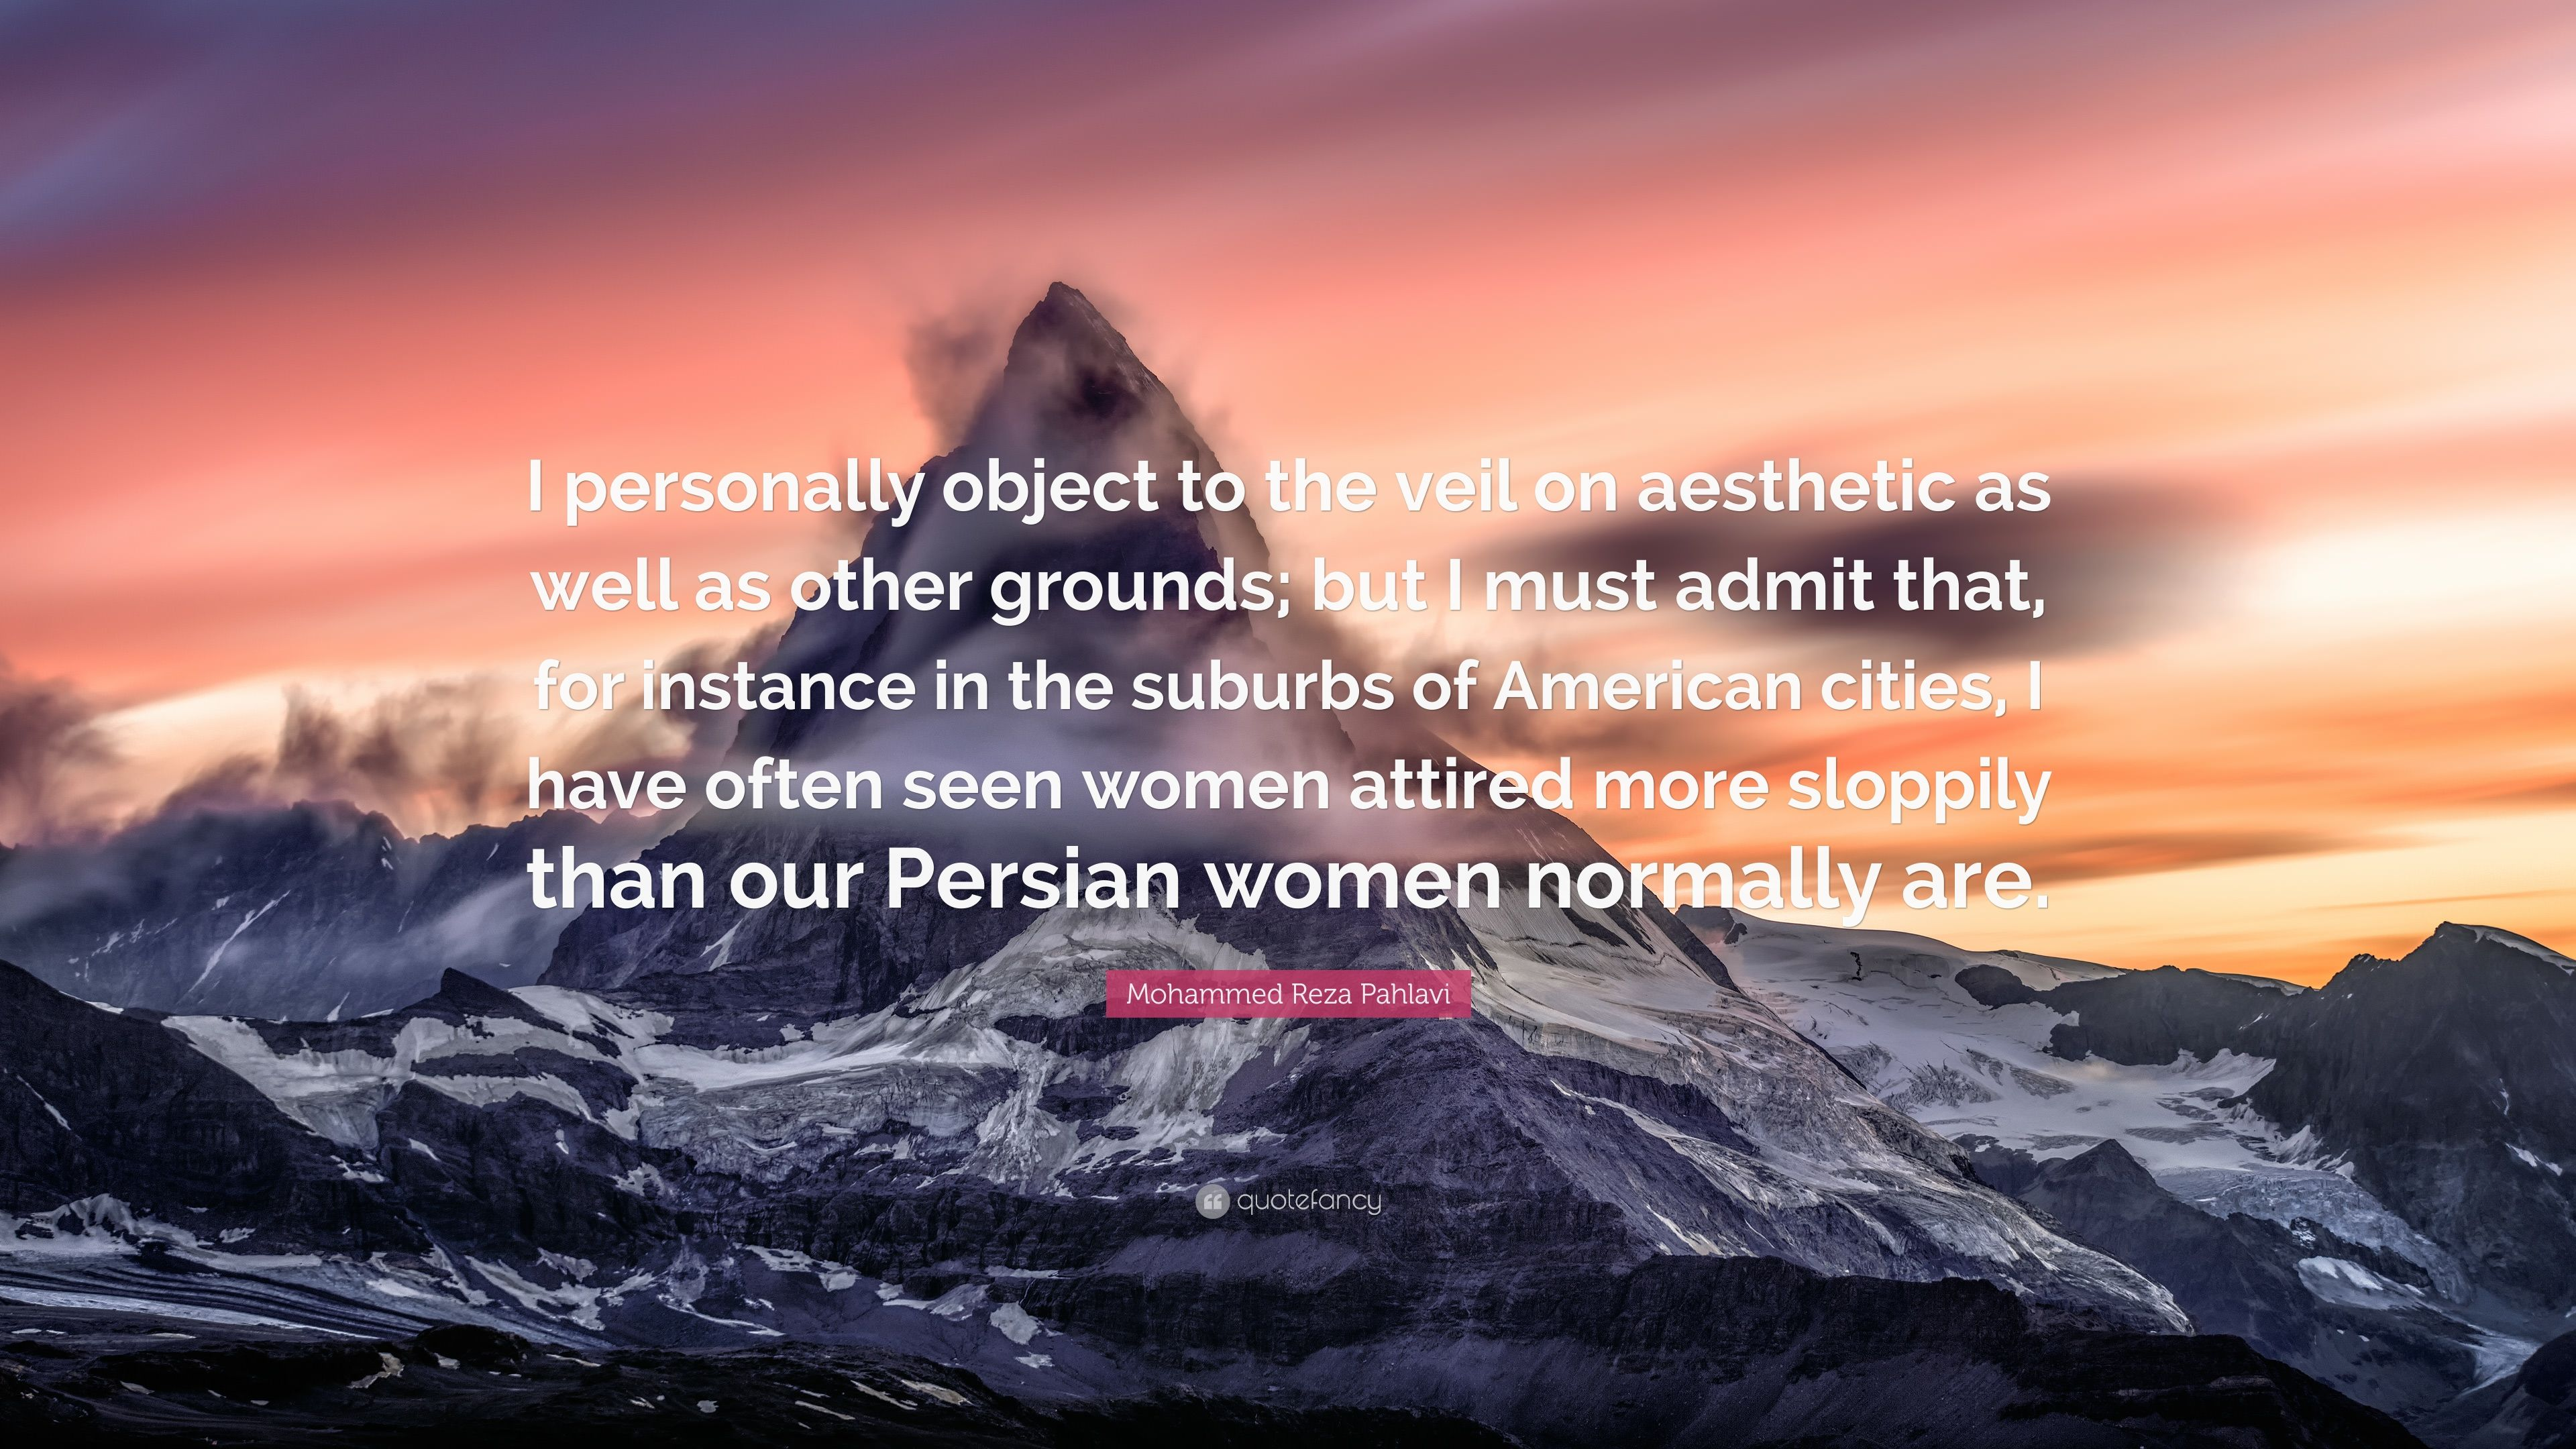 Cool Wallpaper Mountain Aesthetic - 3454608-Mohammed-Reza-Pahlavi-Quote-I-personally-object-to-the-veil-on  Snapshot_789146.jpg